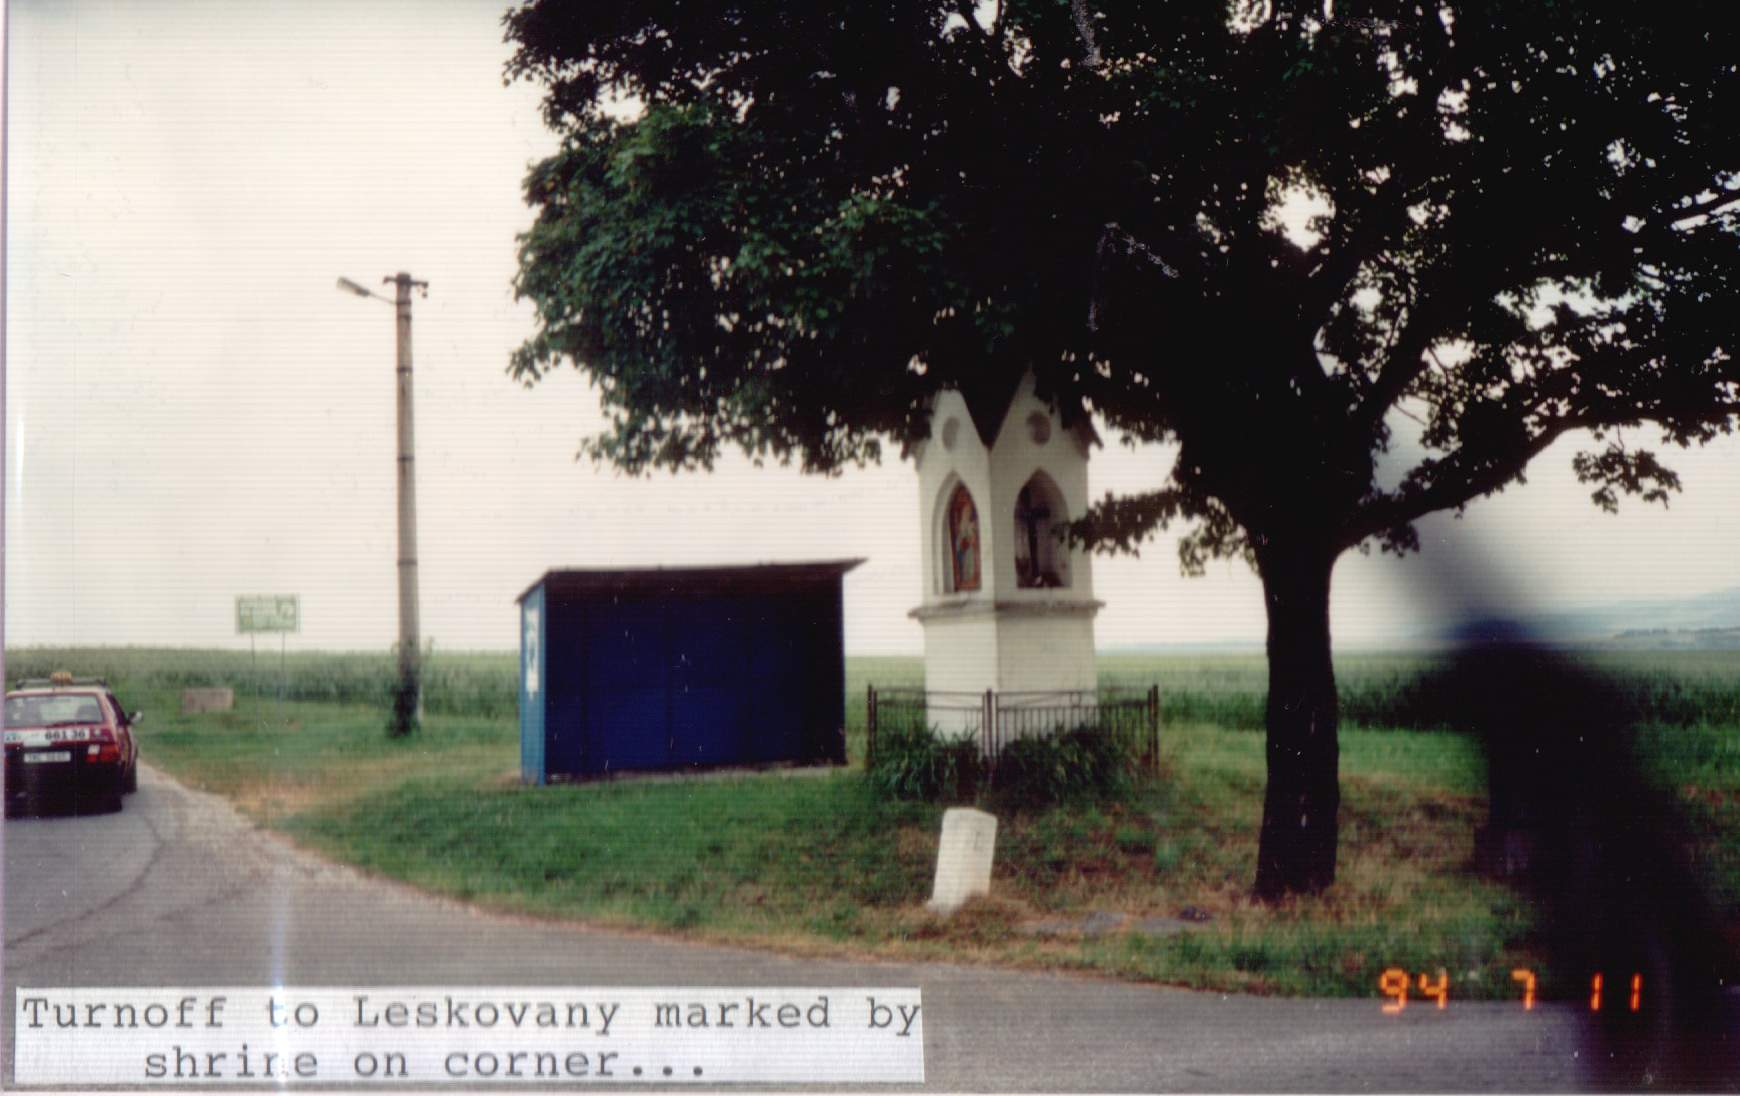 Turn off to Leskovany